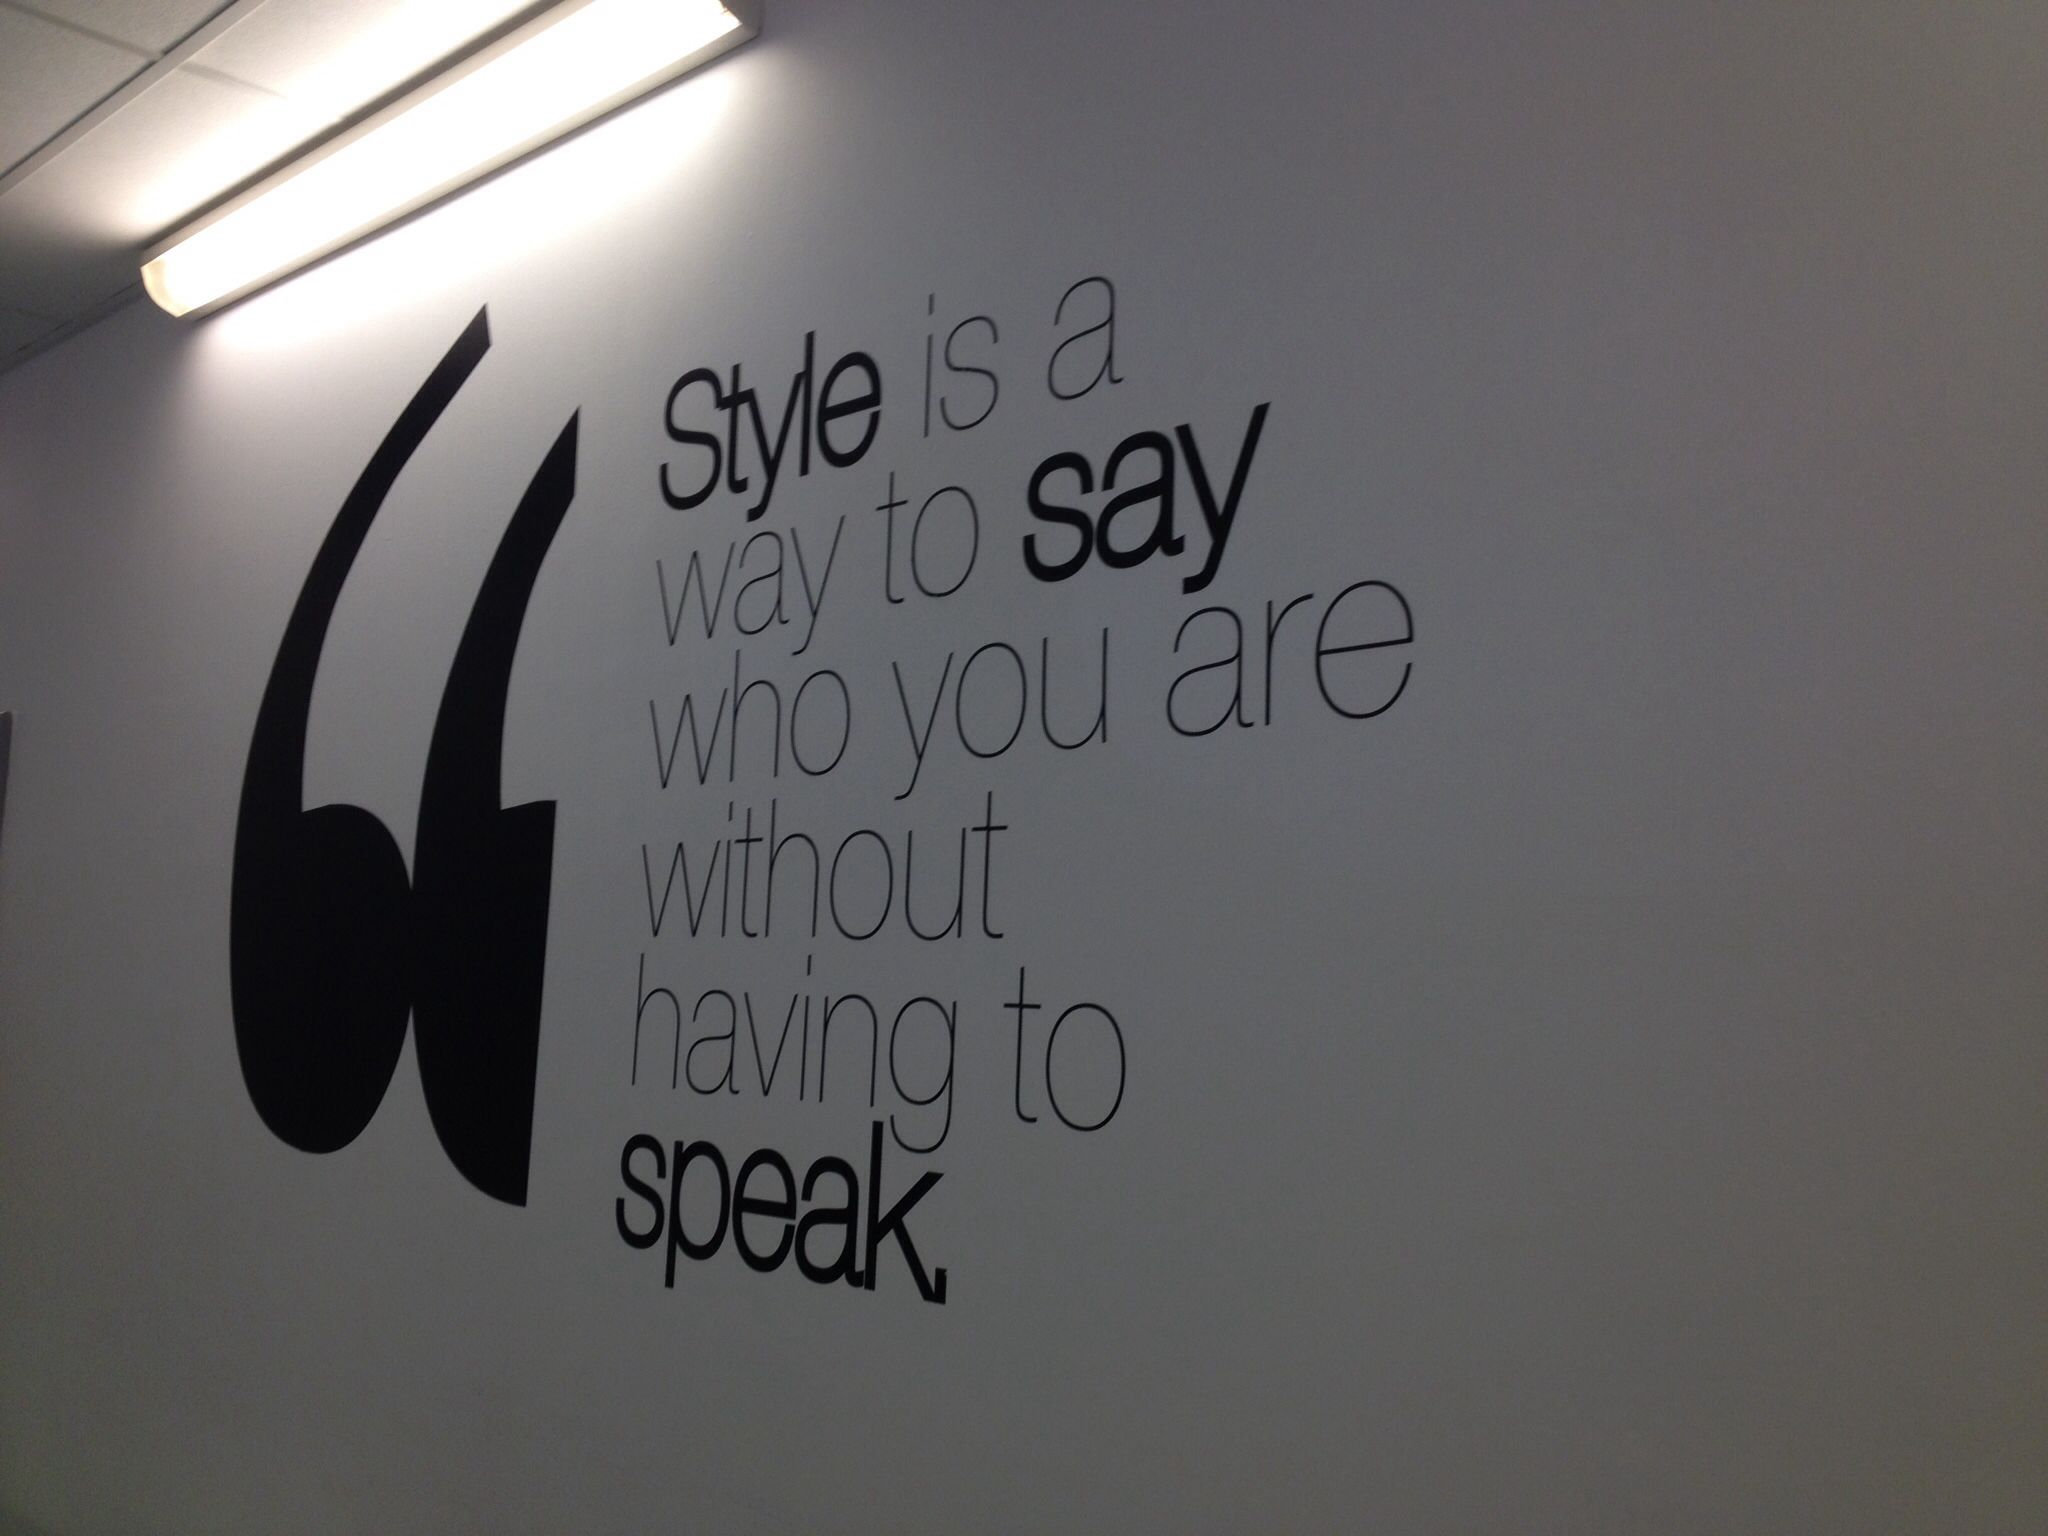 Style is a way to say who you are without having to speak wall sticker from www.wallchimp.co.uk